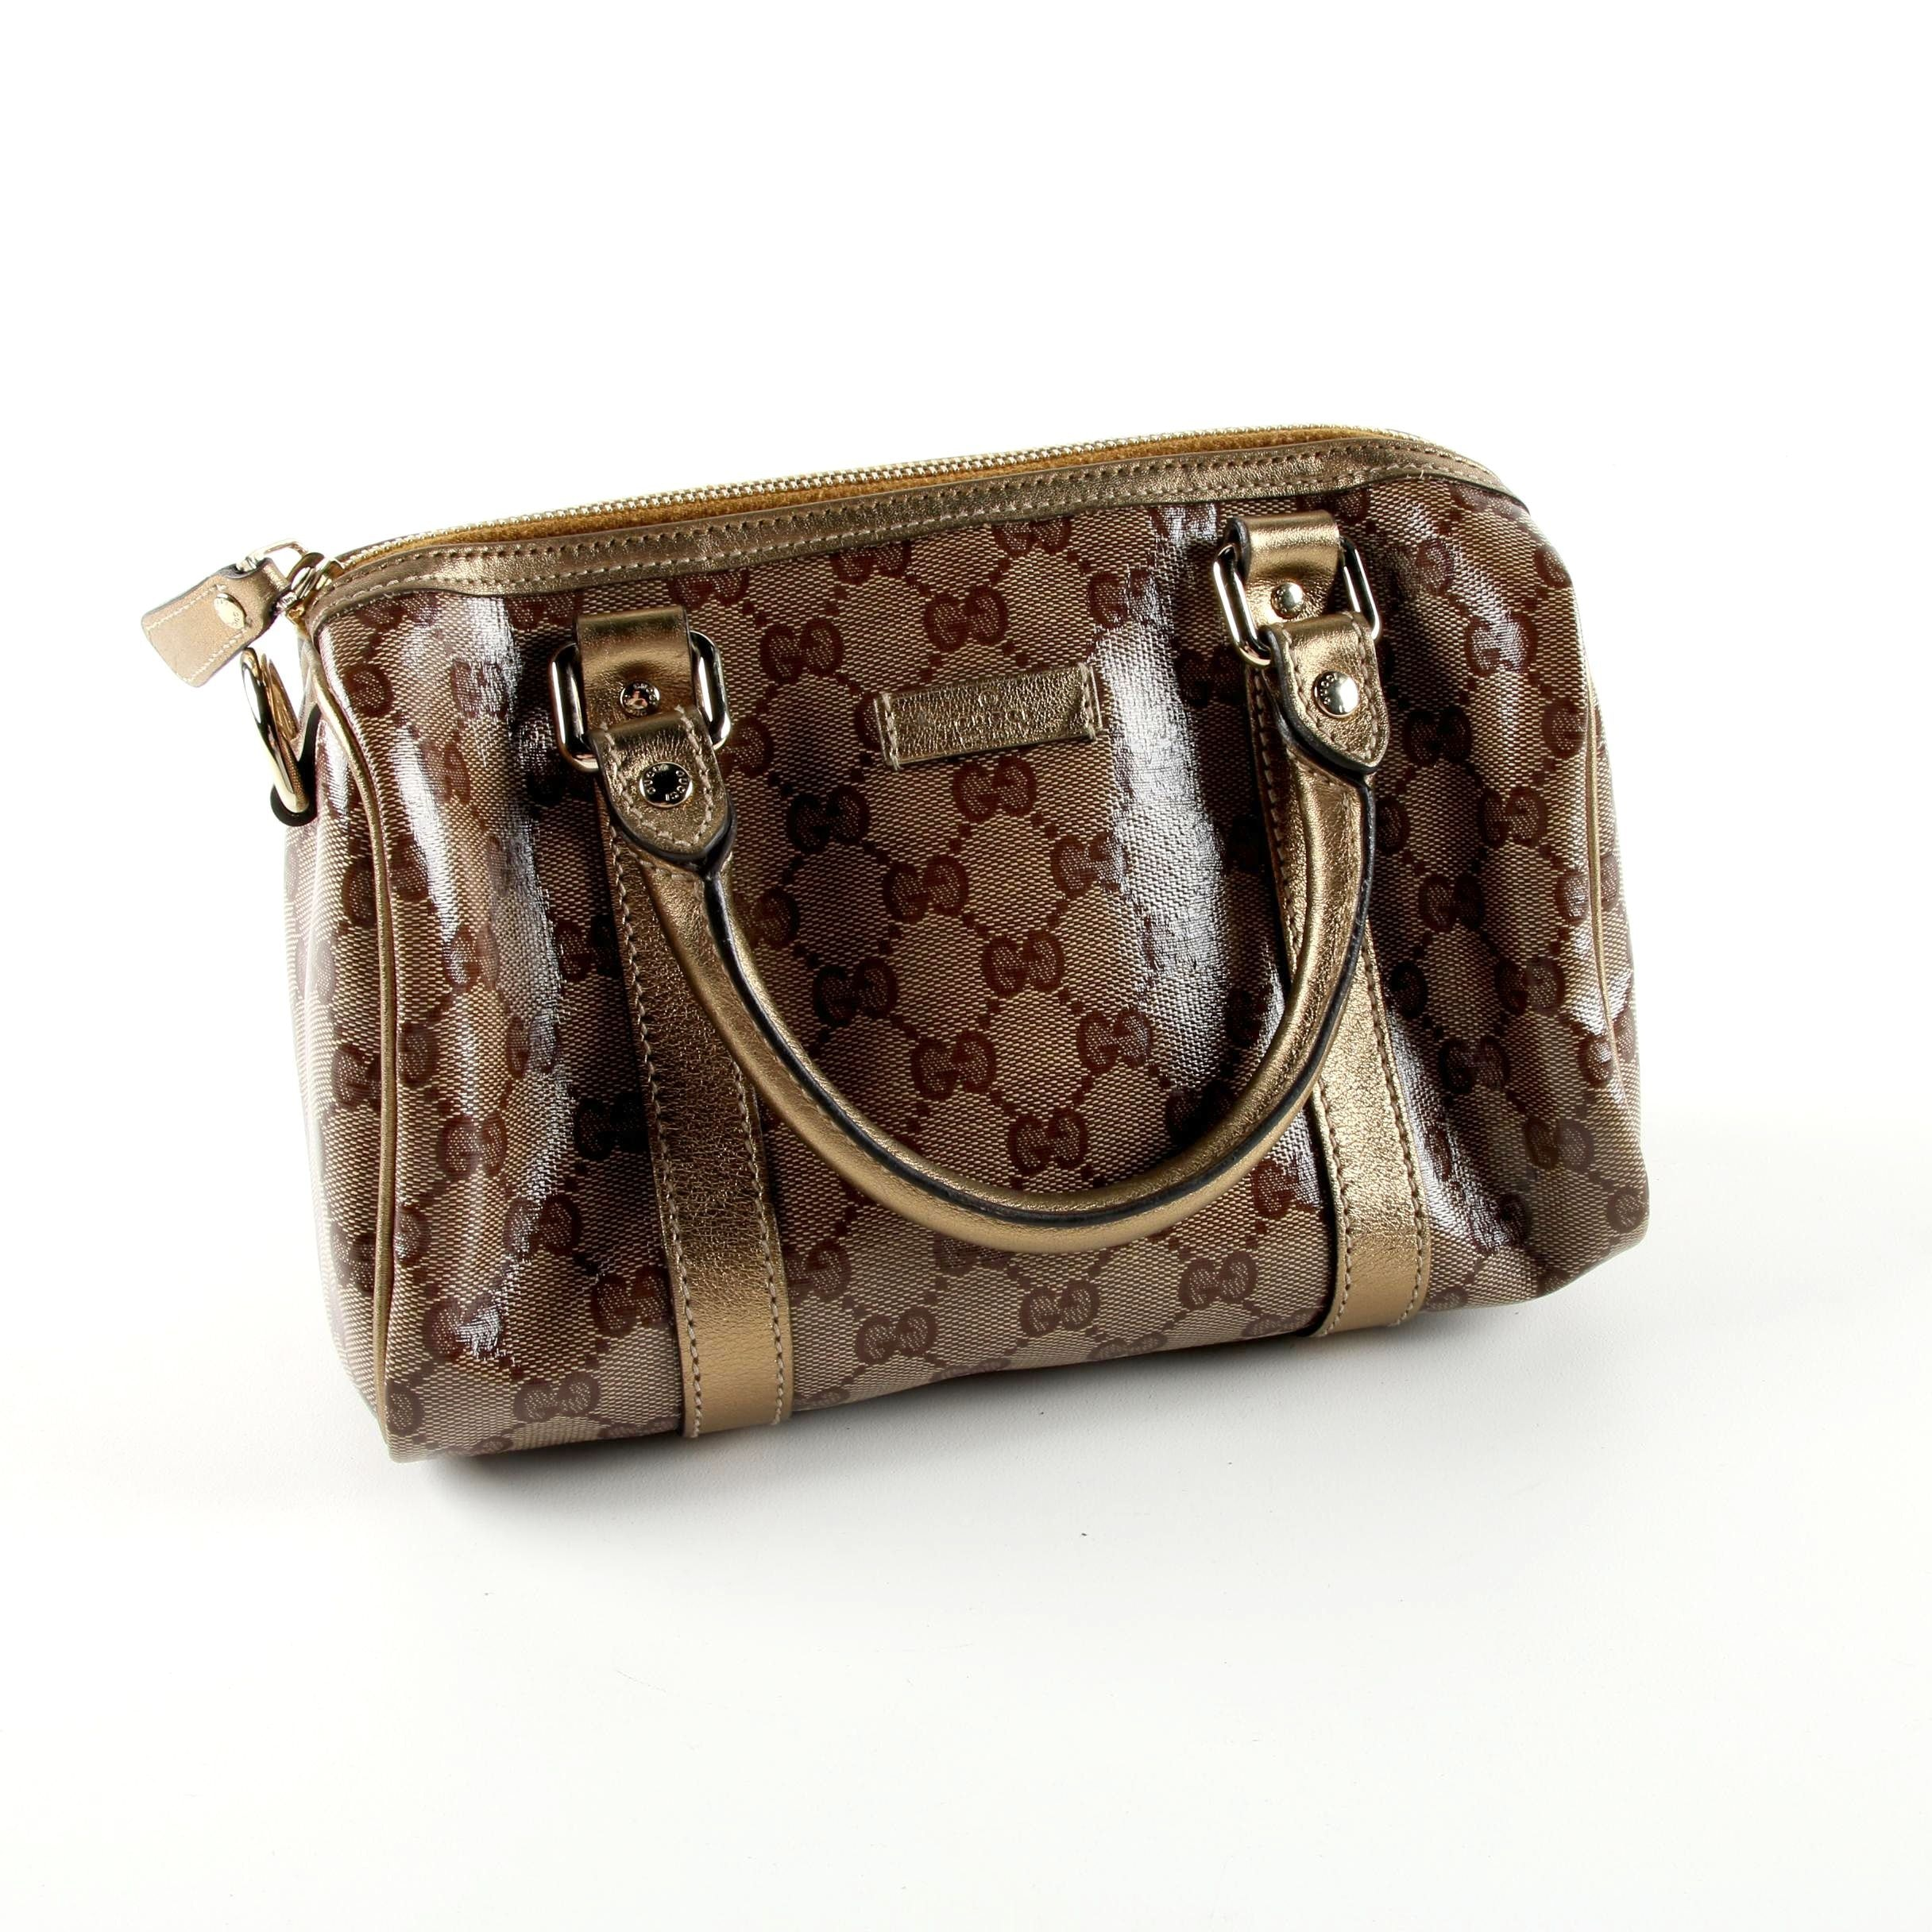 Gucci Boston Brown/Bronze Supreme Coated Canvas and Leather Handbag